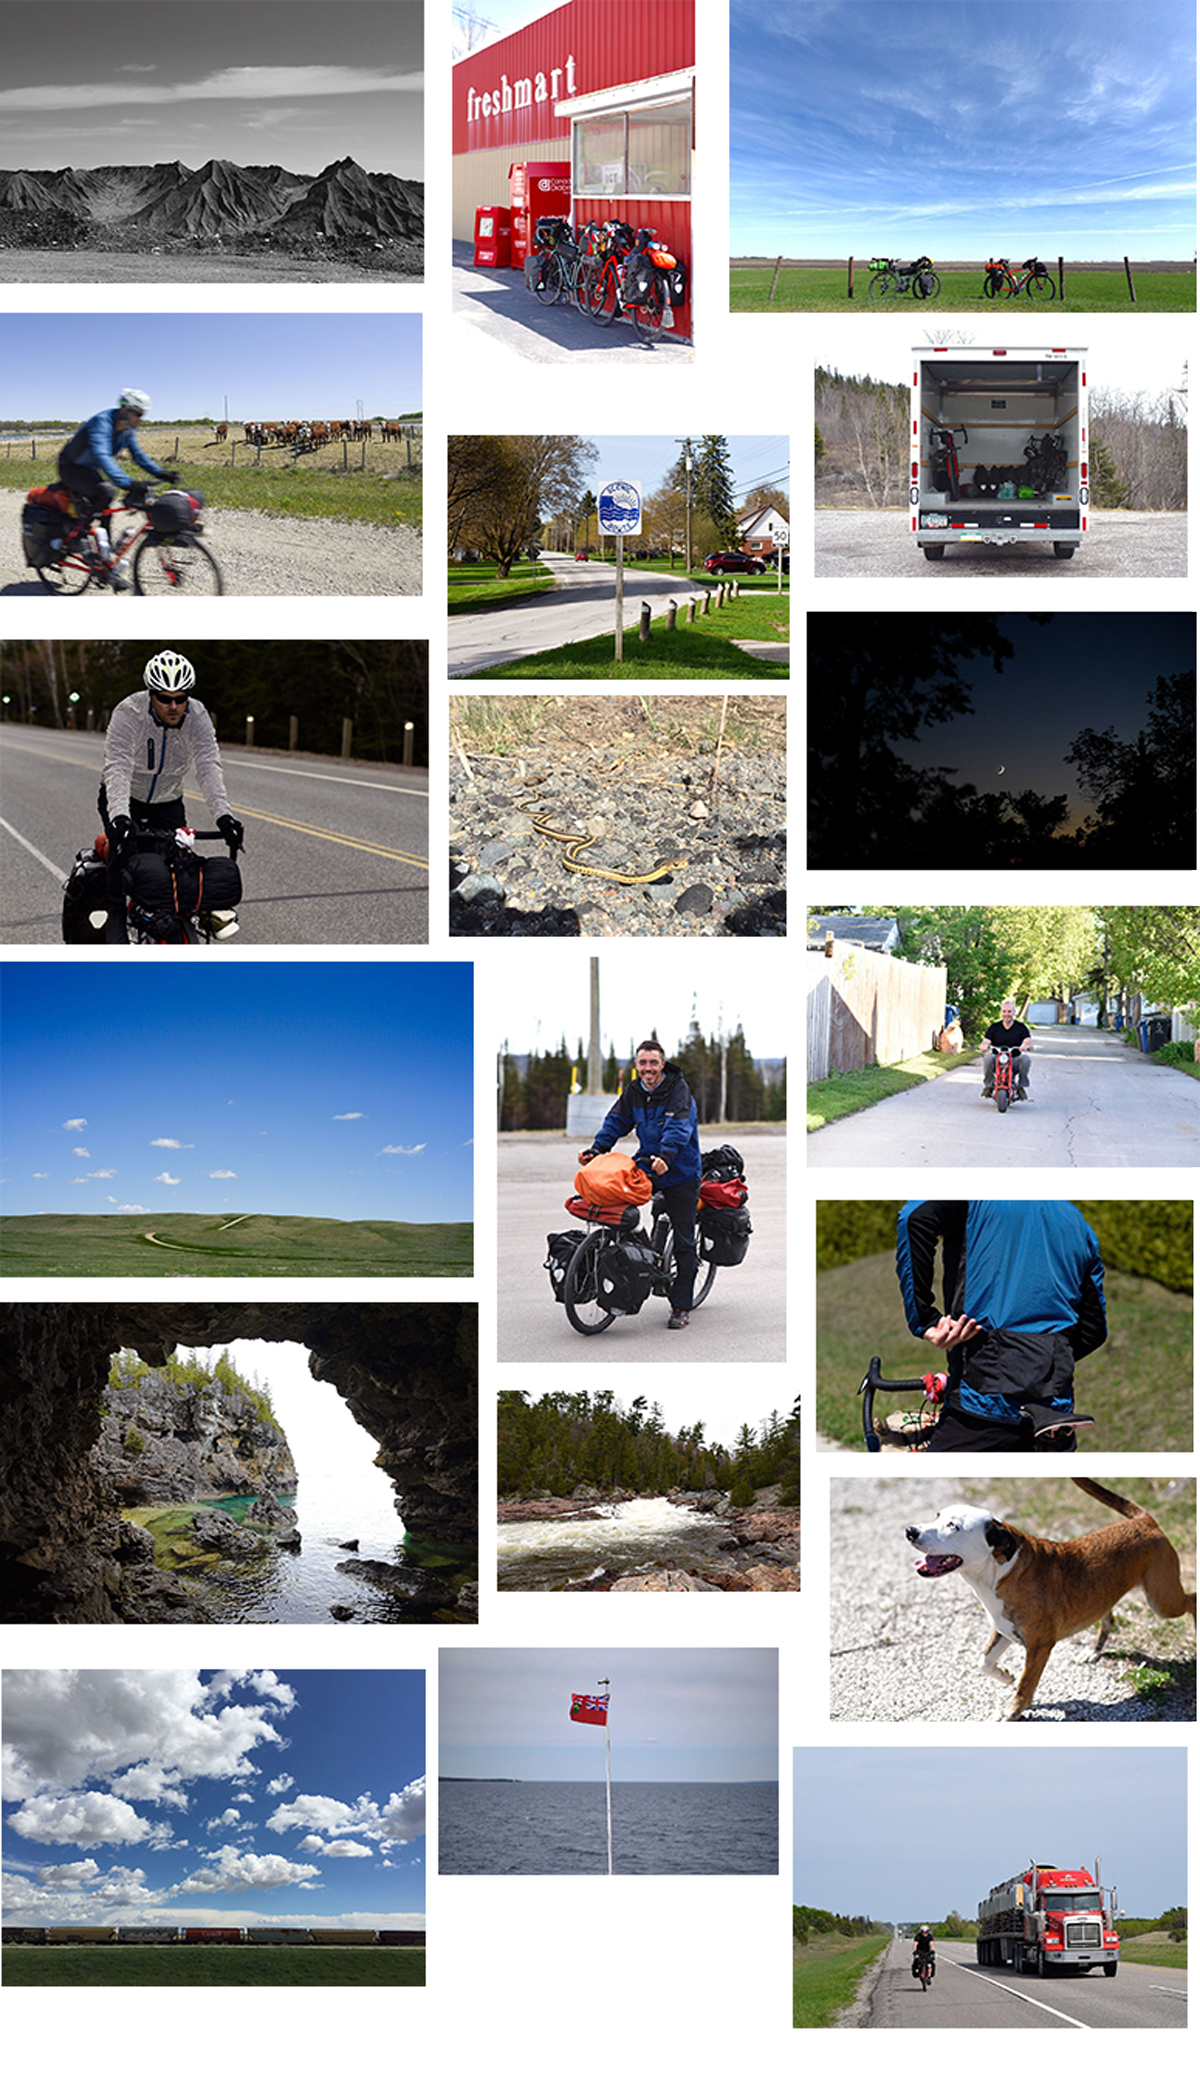 Mike Heslin and Eric Forsyth's ride across Canada, via @outforapedal